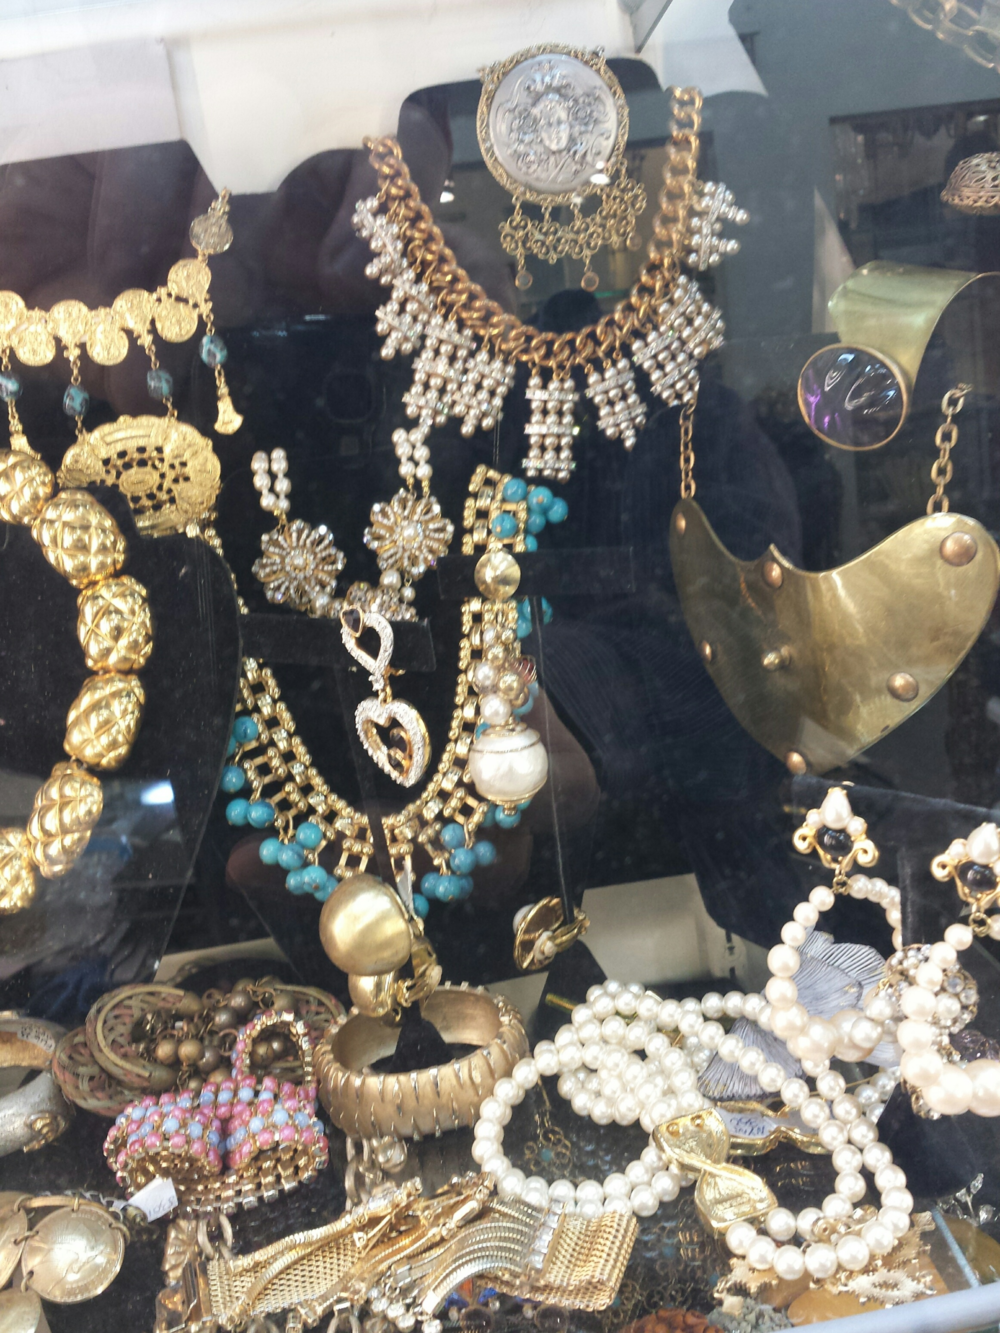 A Pirate's Booty of Treasures from Sheri's Vintage Jewelry Collections